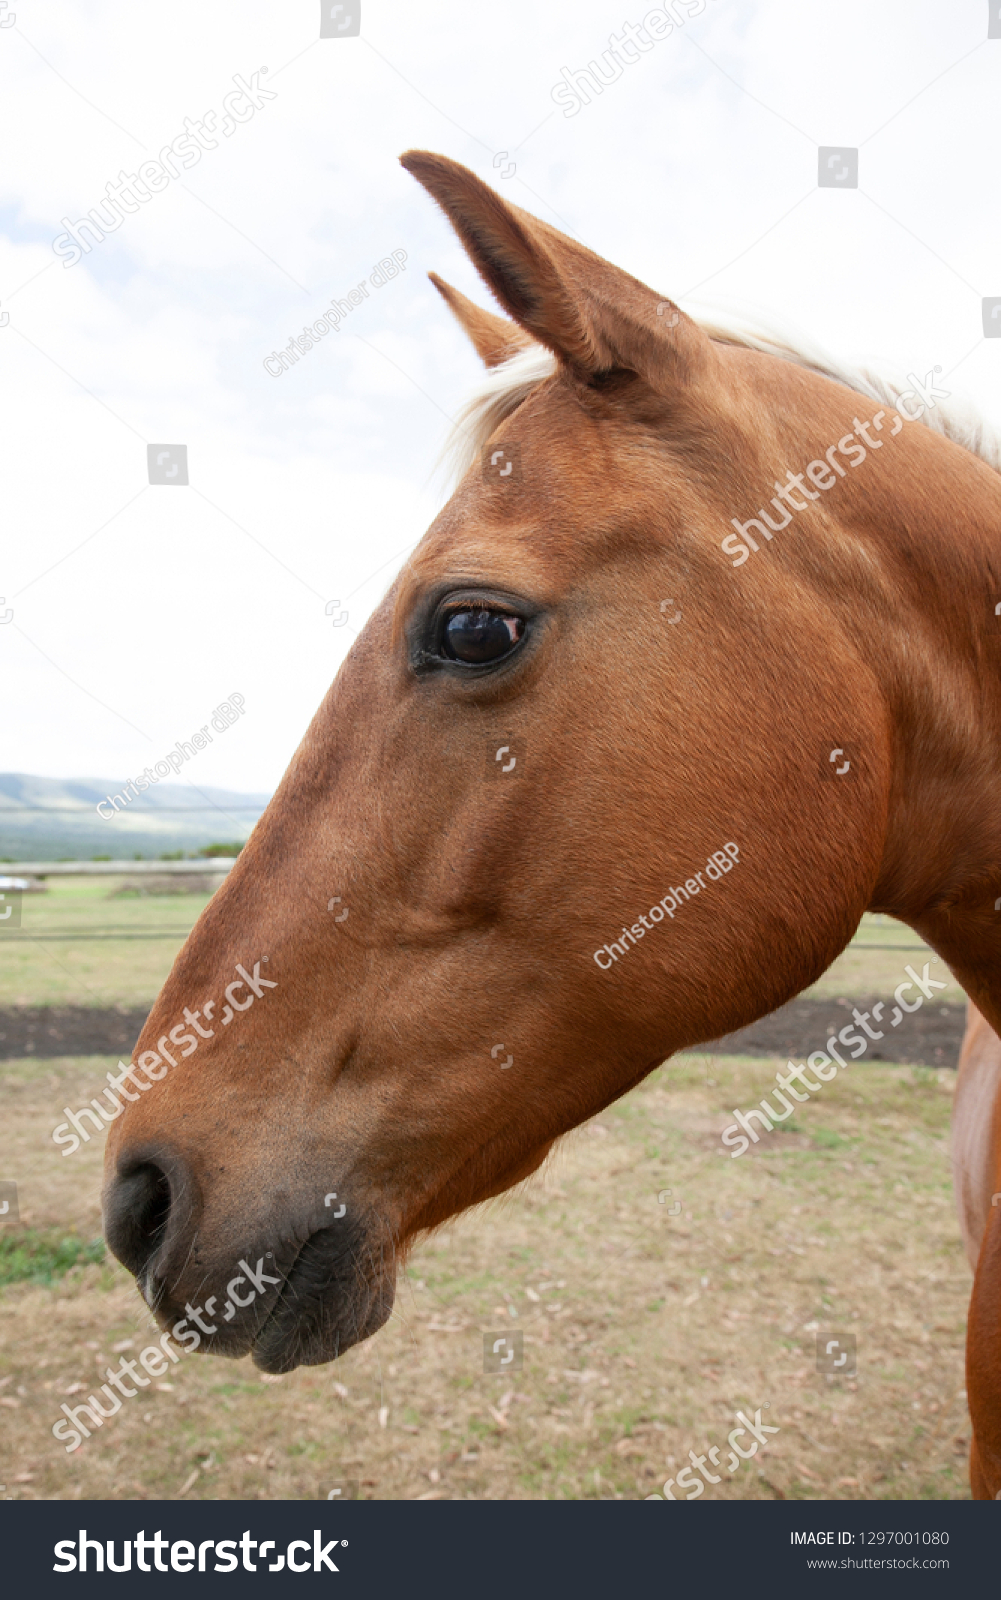 Portrait of palomino horse #1297001080